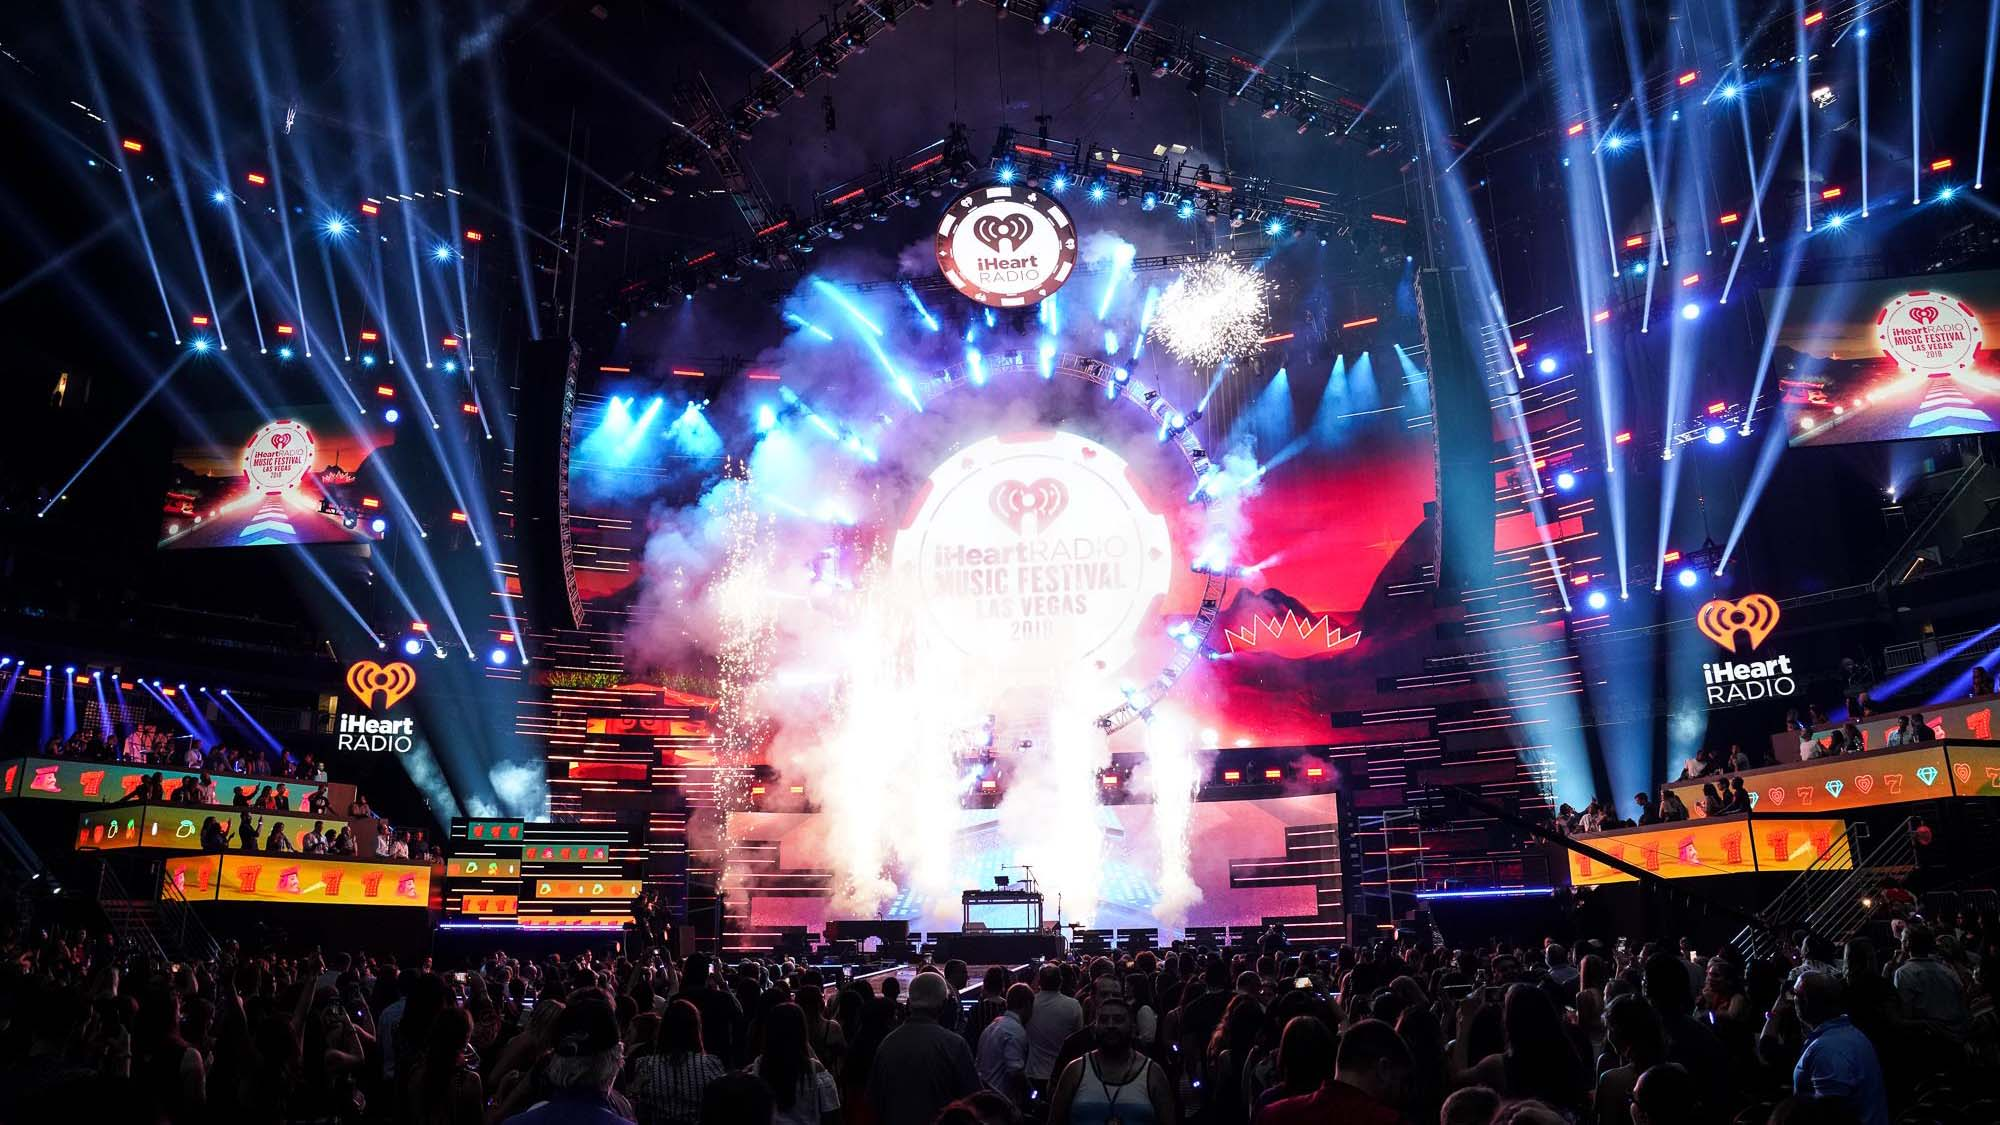 Image of iHeartCountry Festival